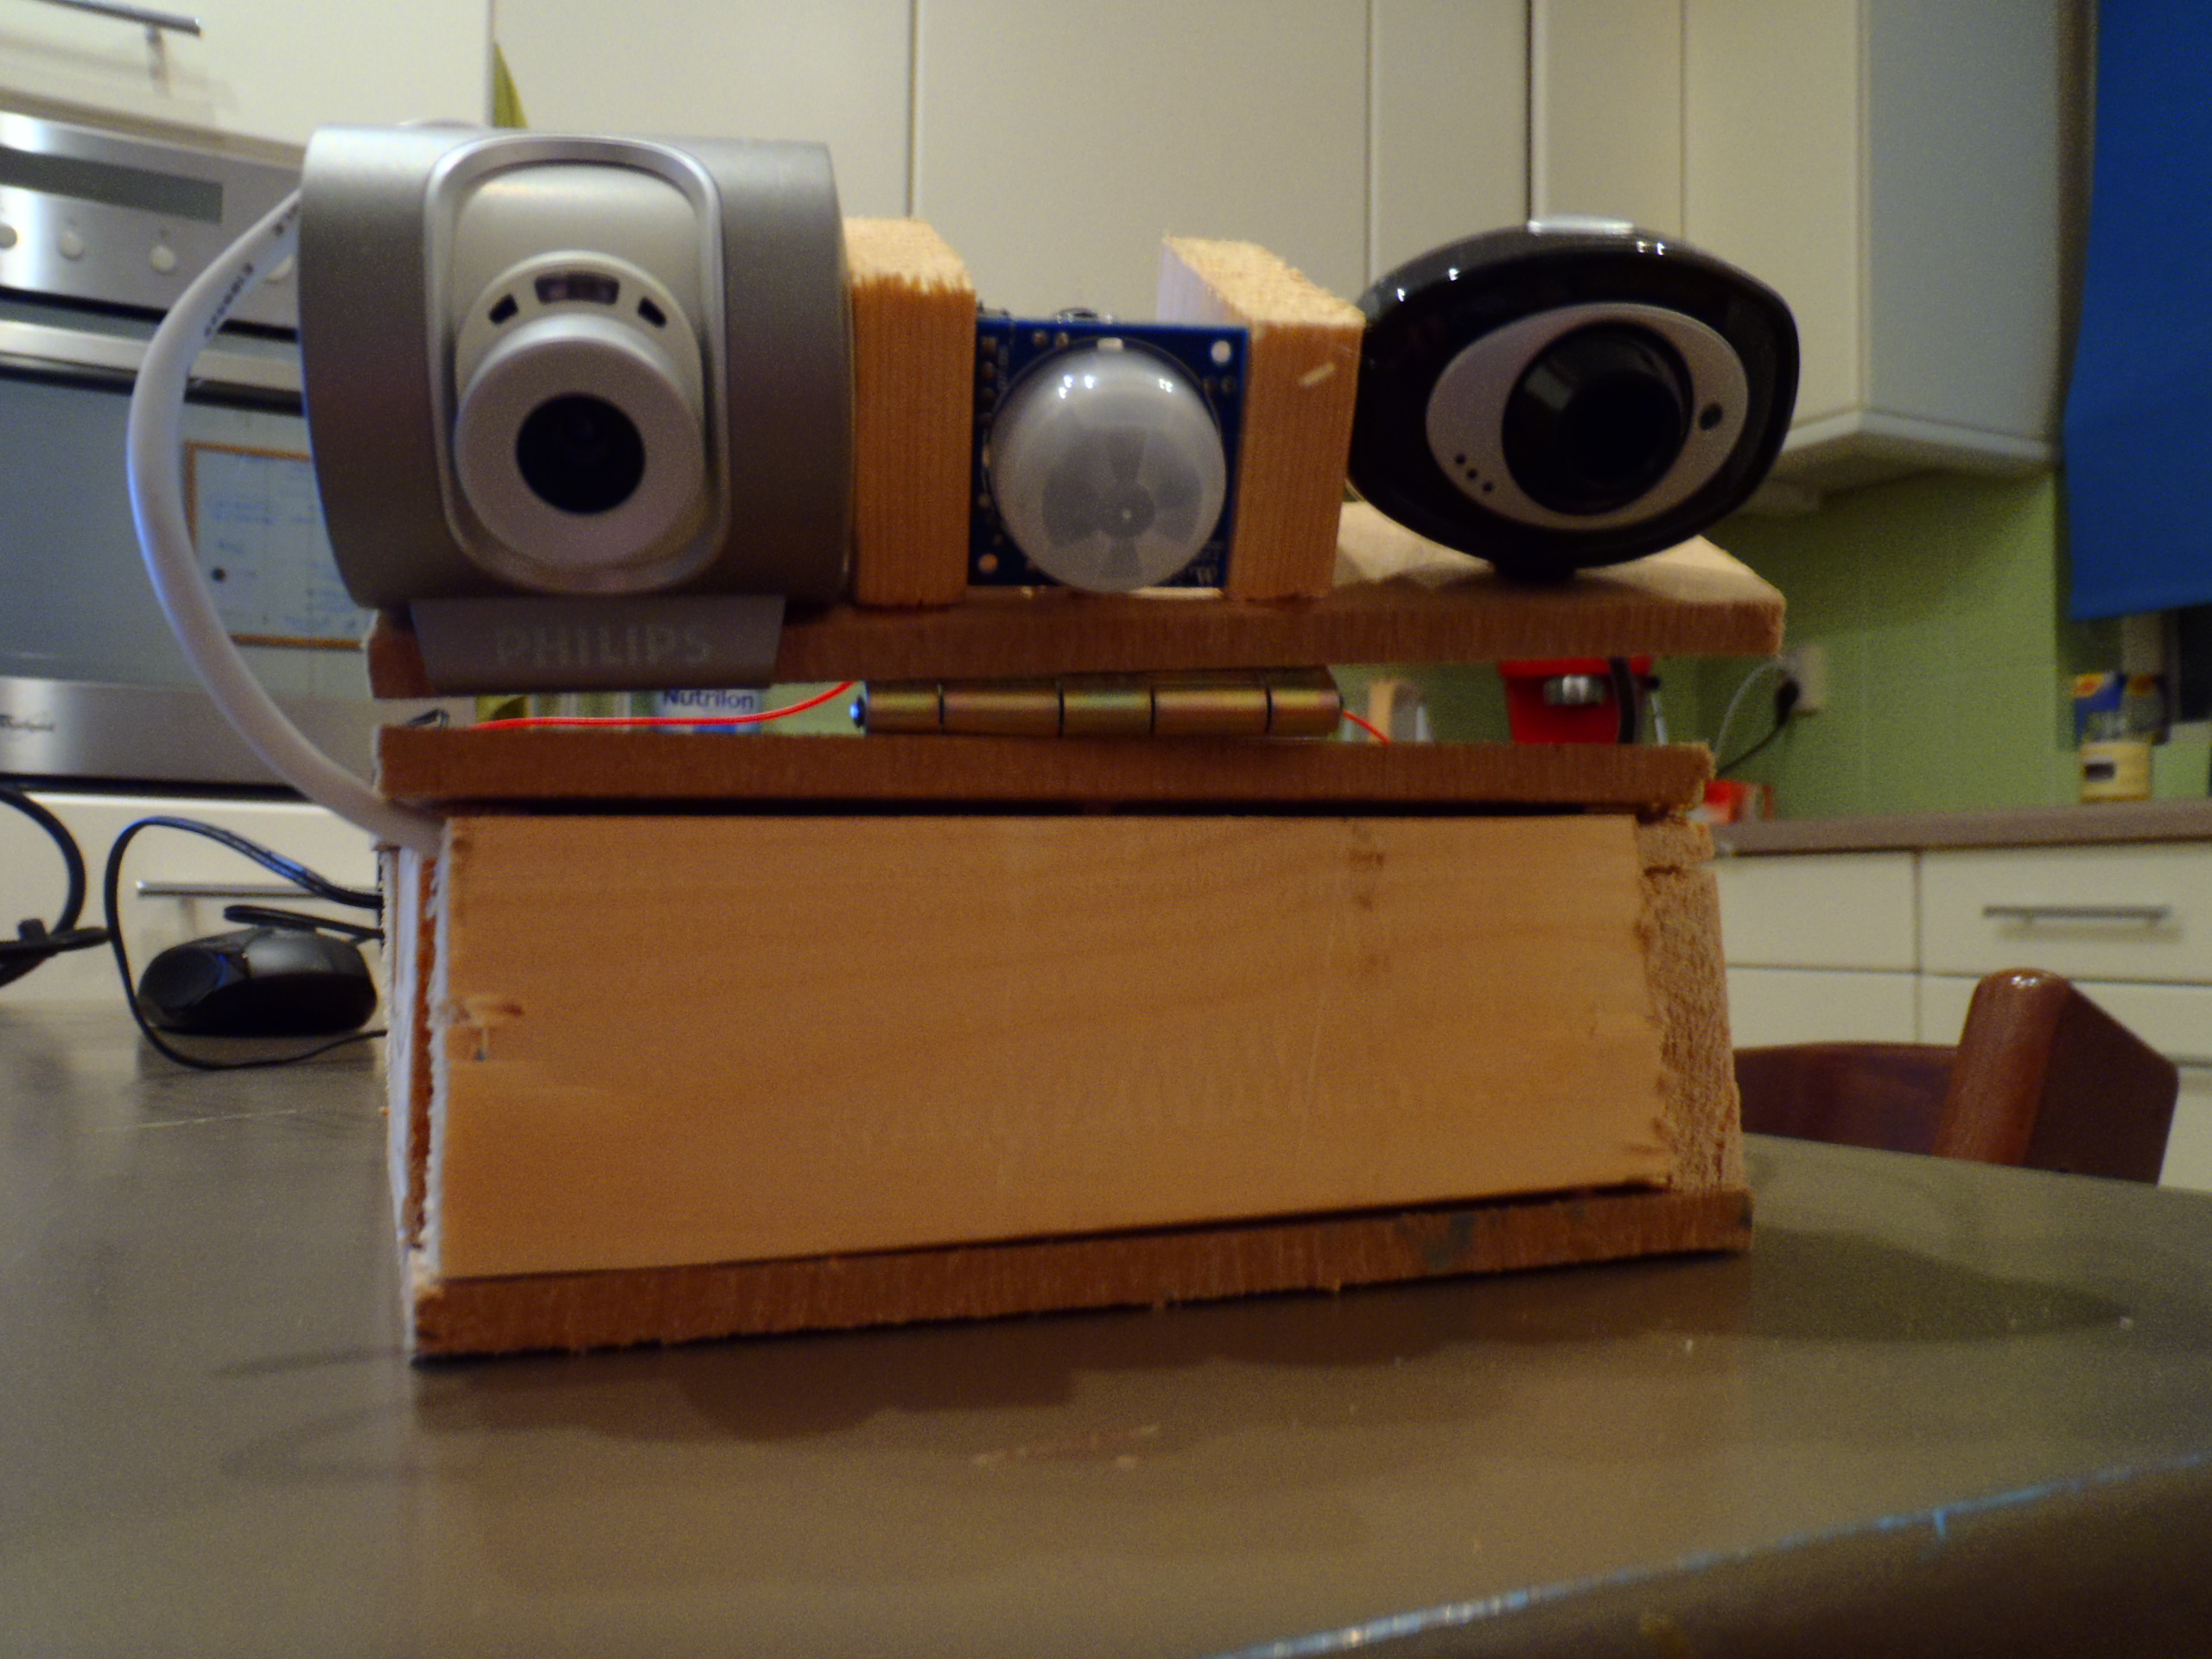 Build your own wireless IP camera